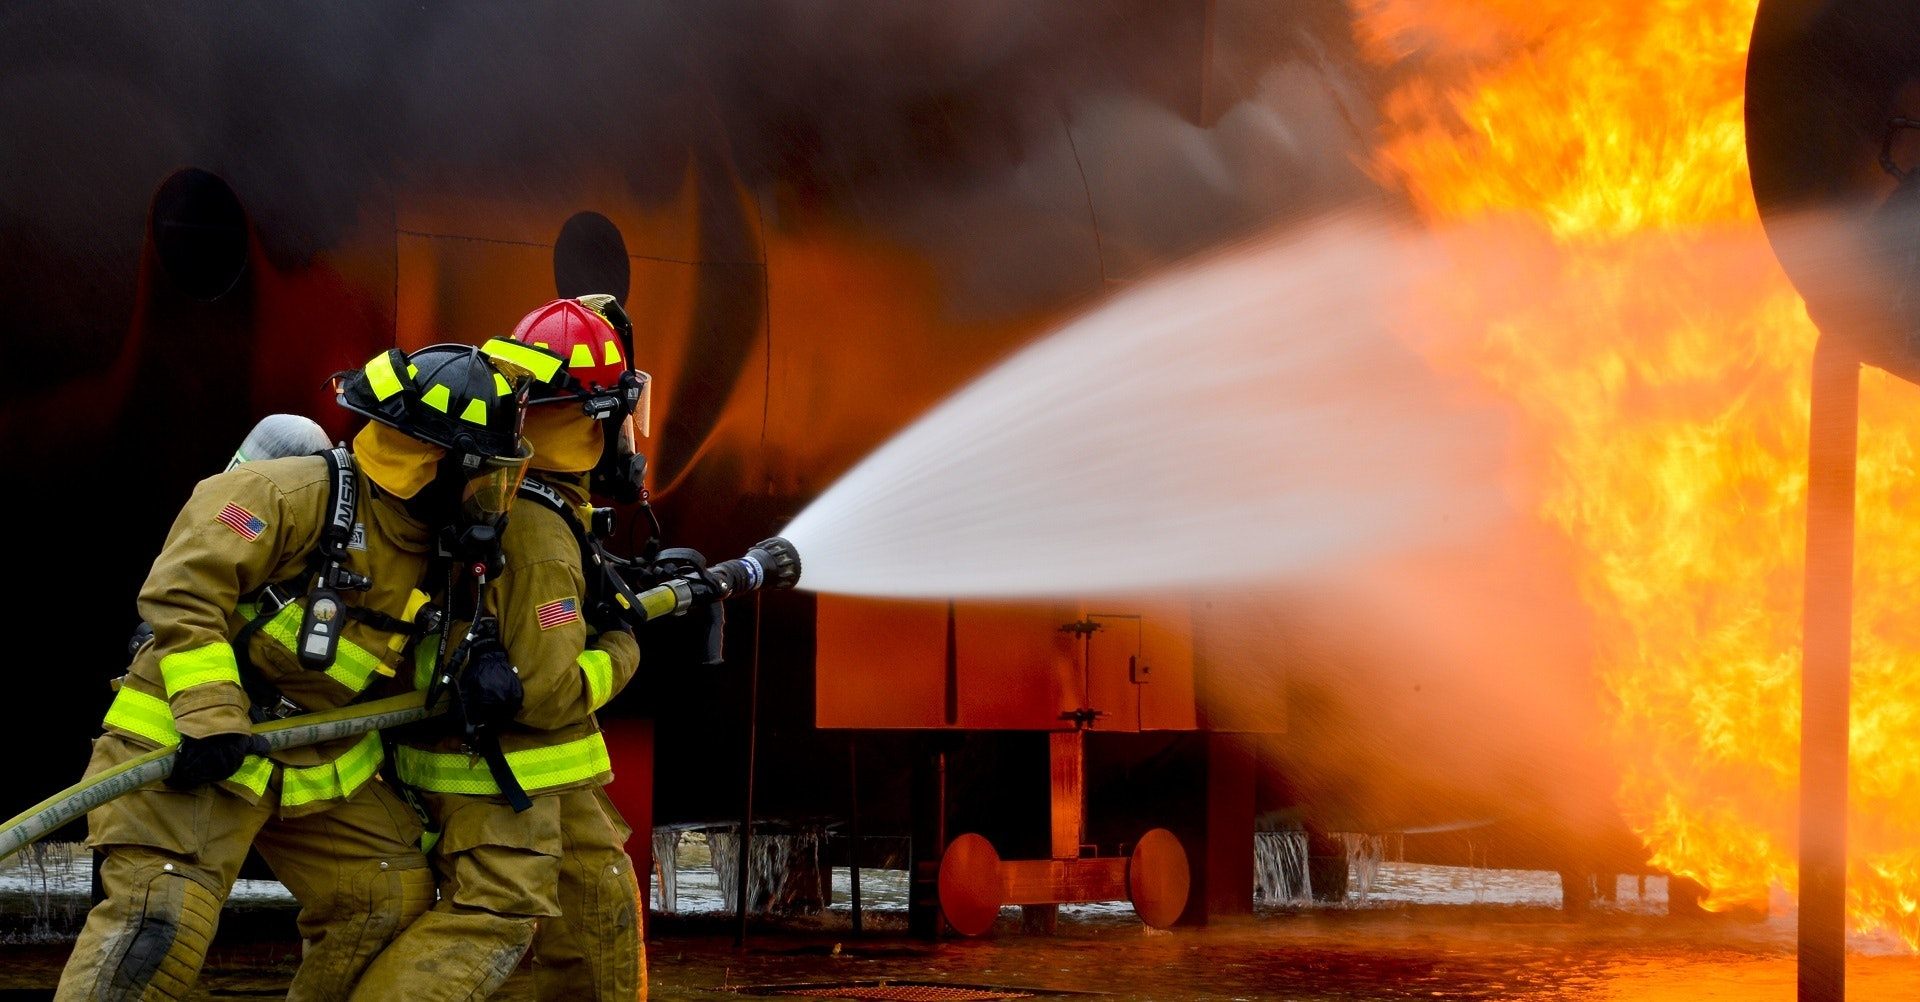 Crisis Communications for First Responders